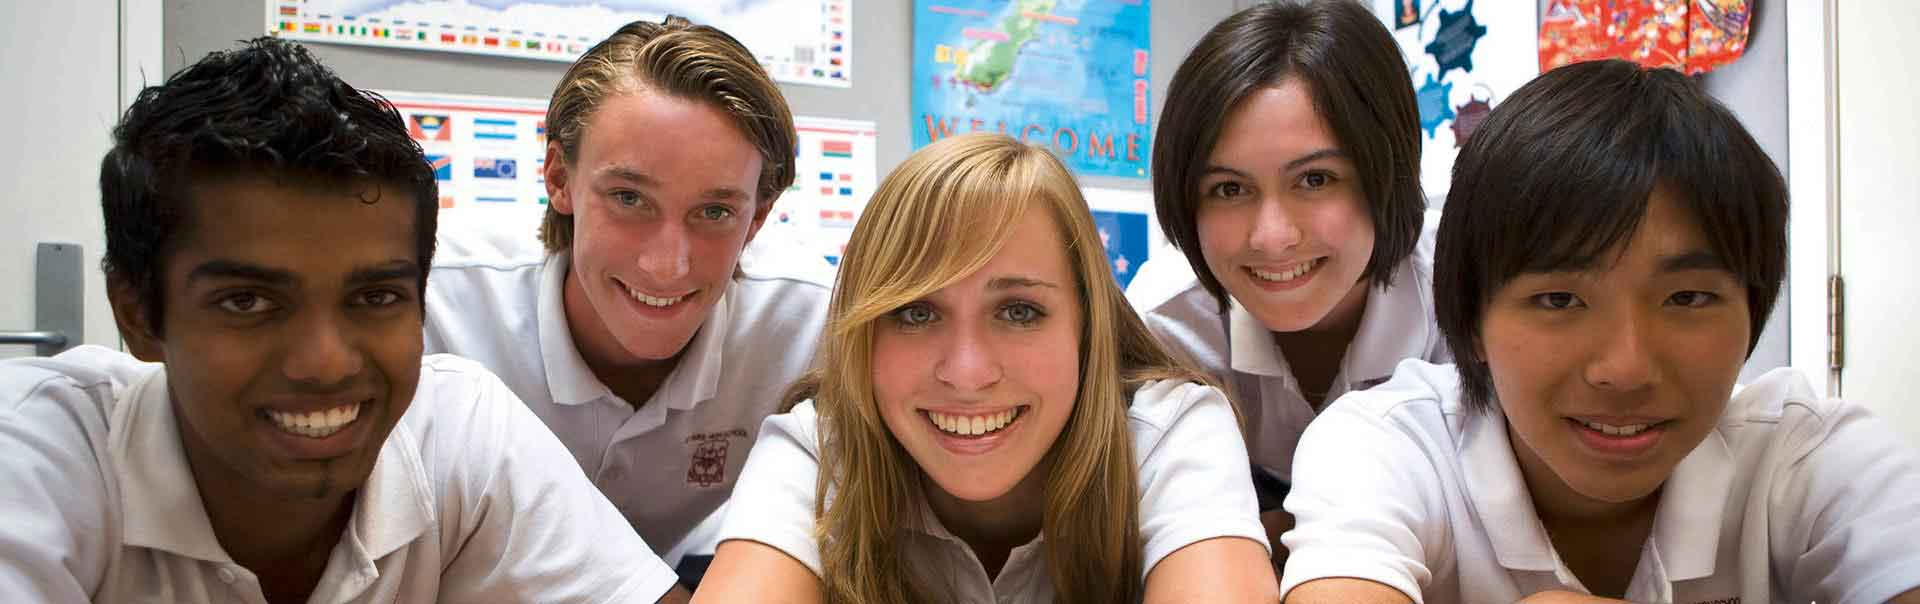 2019 Educatius High School Programs in New Zealand for International Students